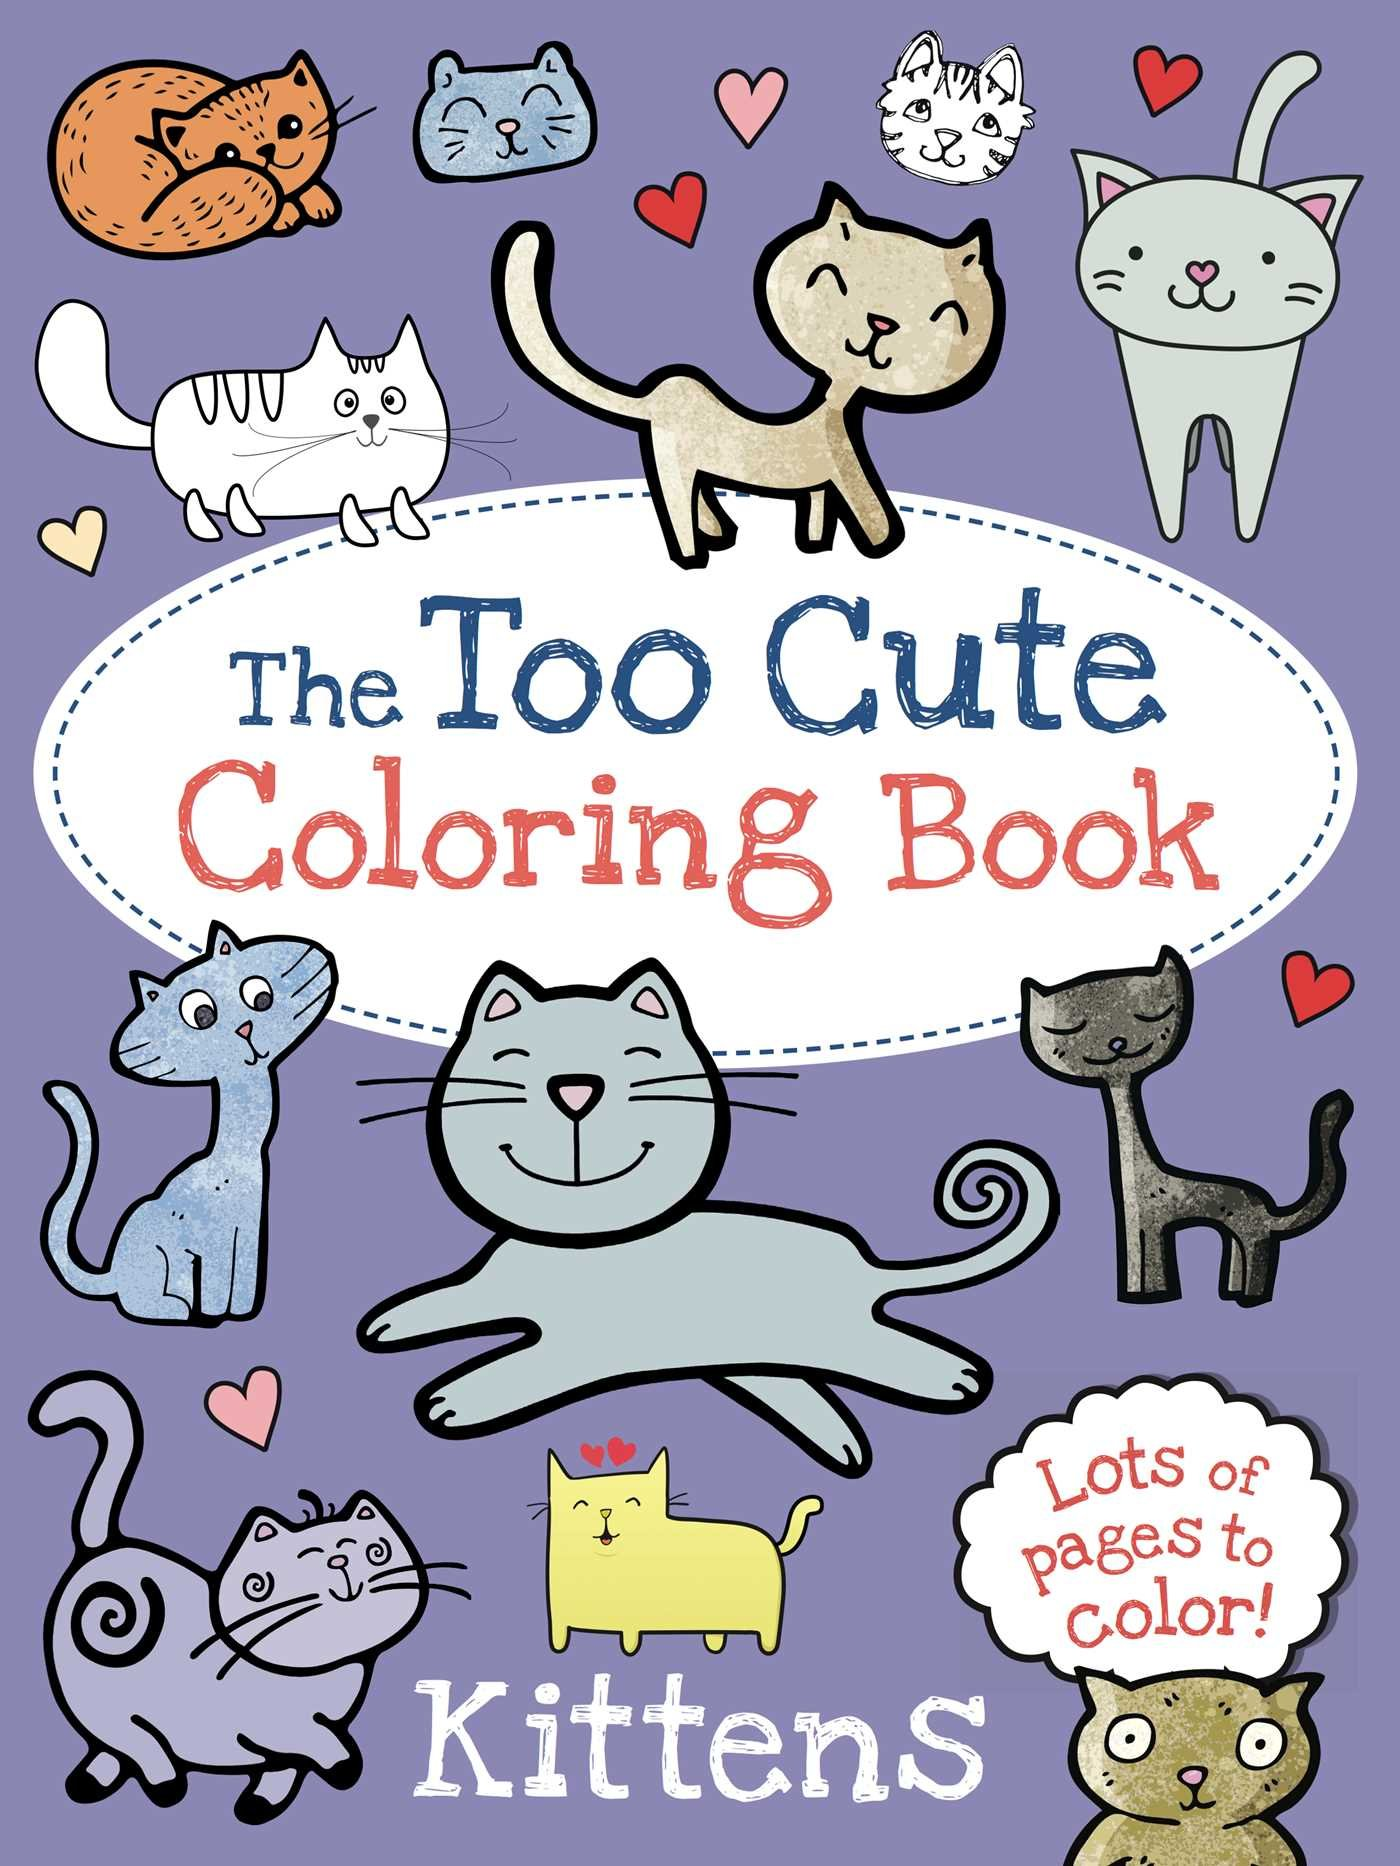 Coloring book kittens - The Too Cute Coloring Book Kittens Little Bee Books 9781499802061 Amazon Com Books